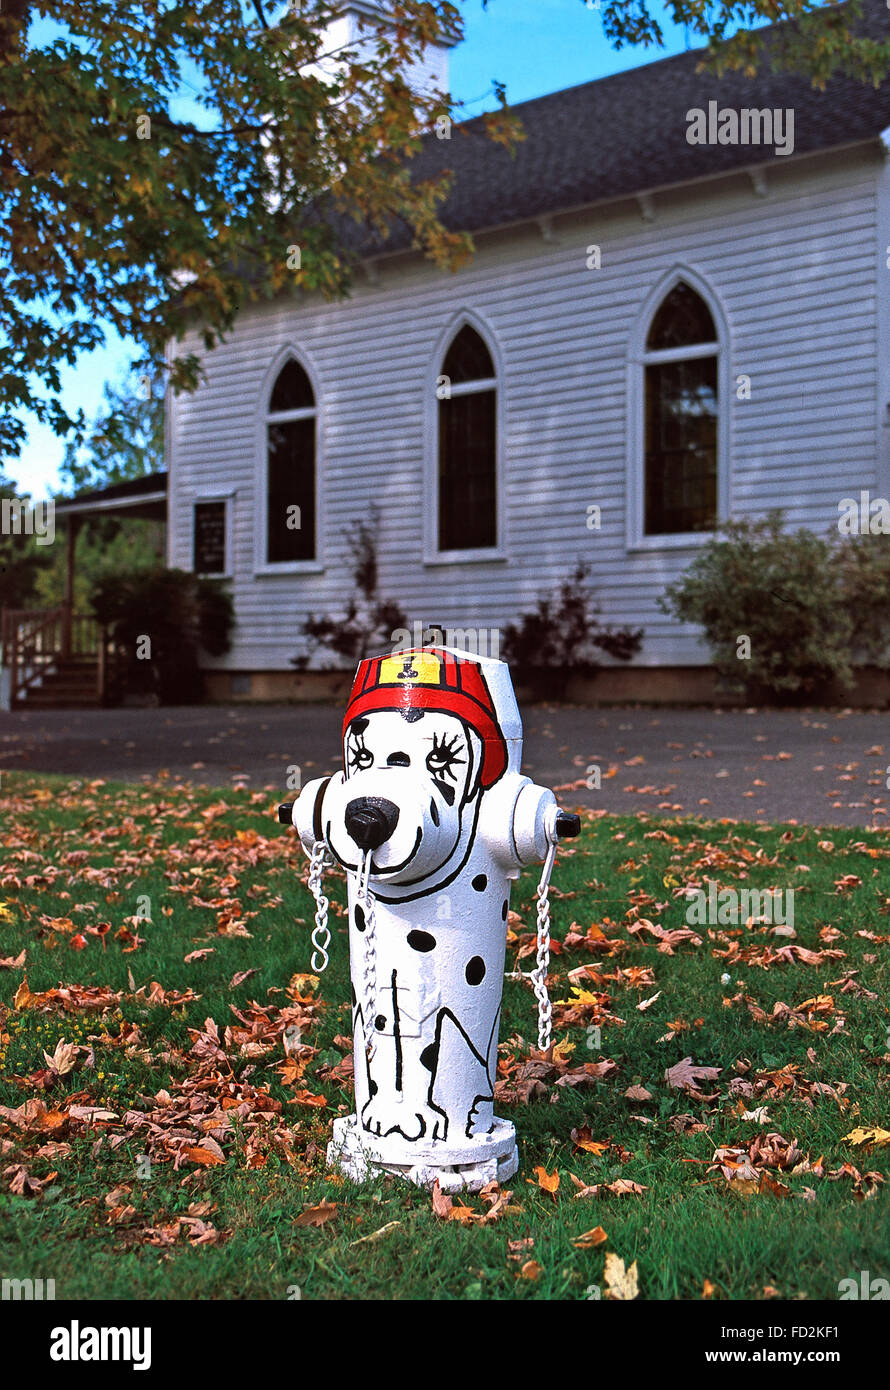 Painted and decorated doggy fire hydrant,New Carlisle,Gaspe Peninsula,Quebec - Stock Image